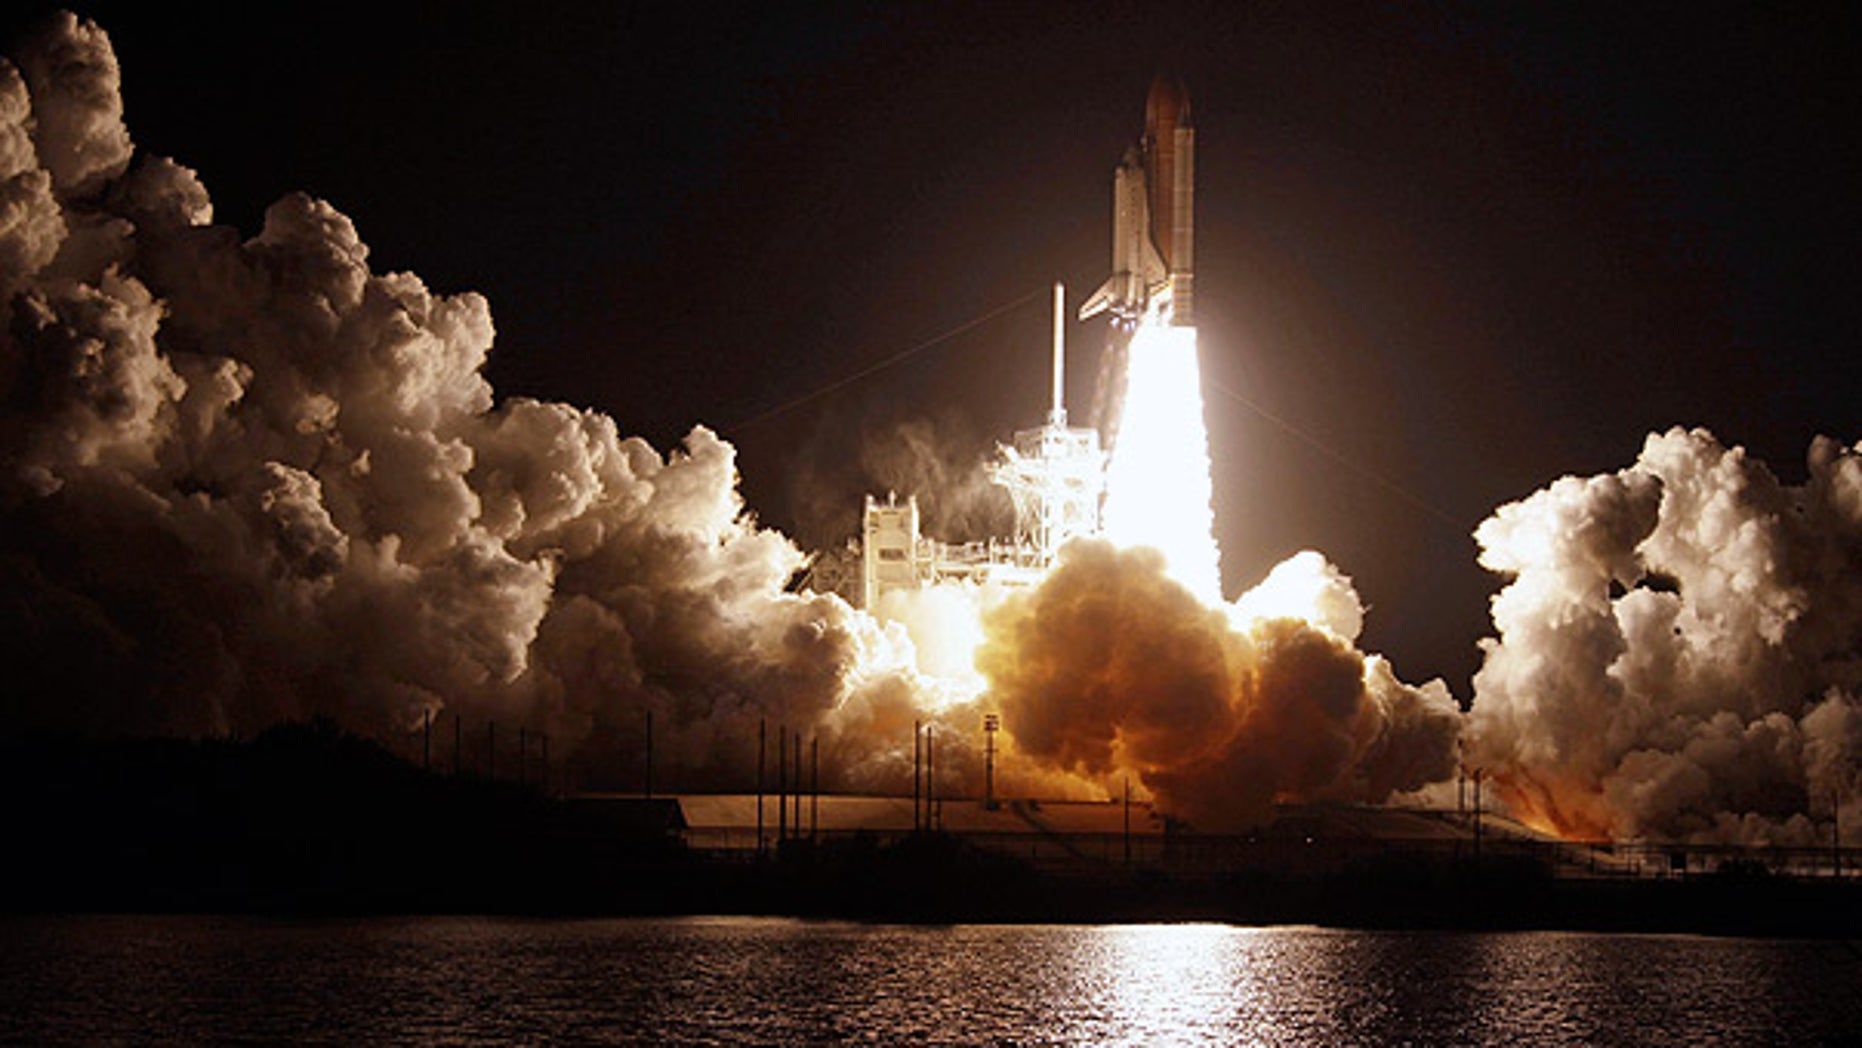 Feb. 8, 2010: Space Shuttle Endeavour lifts-off from the Kennedy Space Center at Cape Canaveral, Fla.